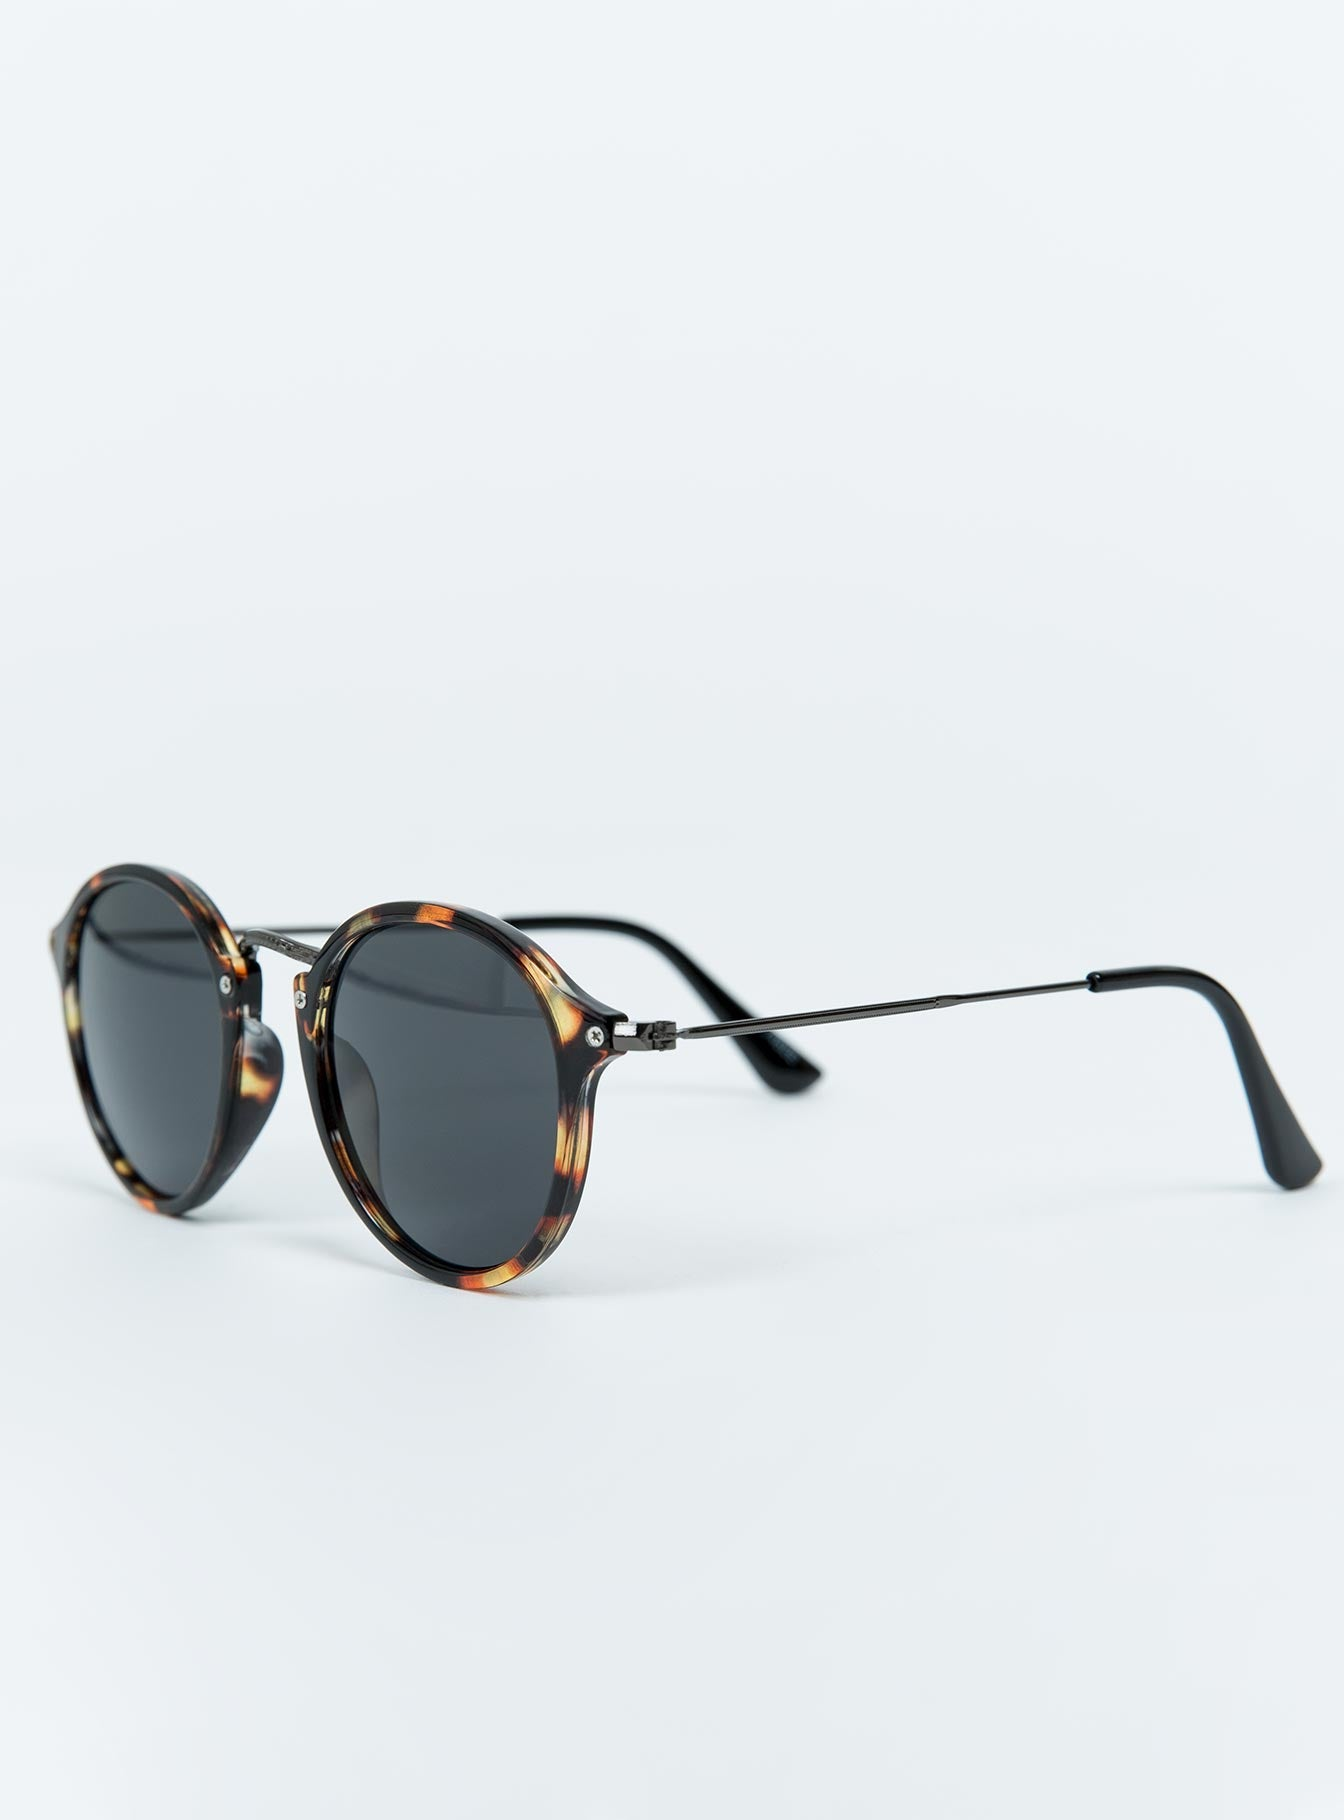 The Clueso Sunglasses Tortoiseshell